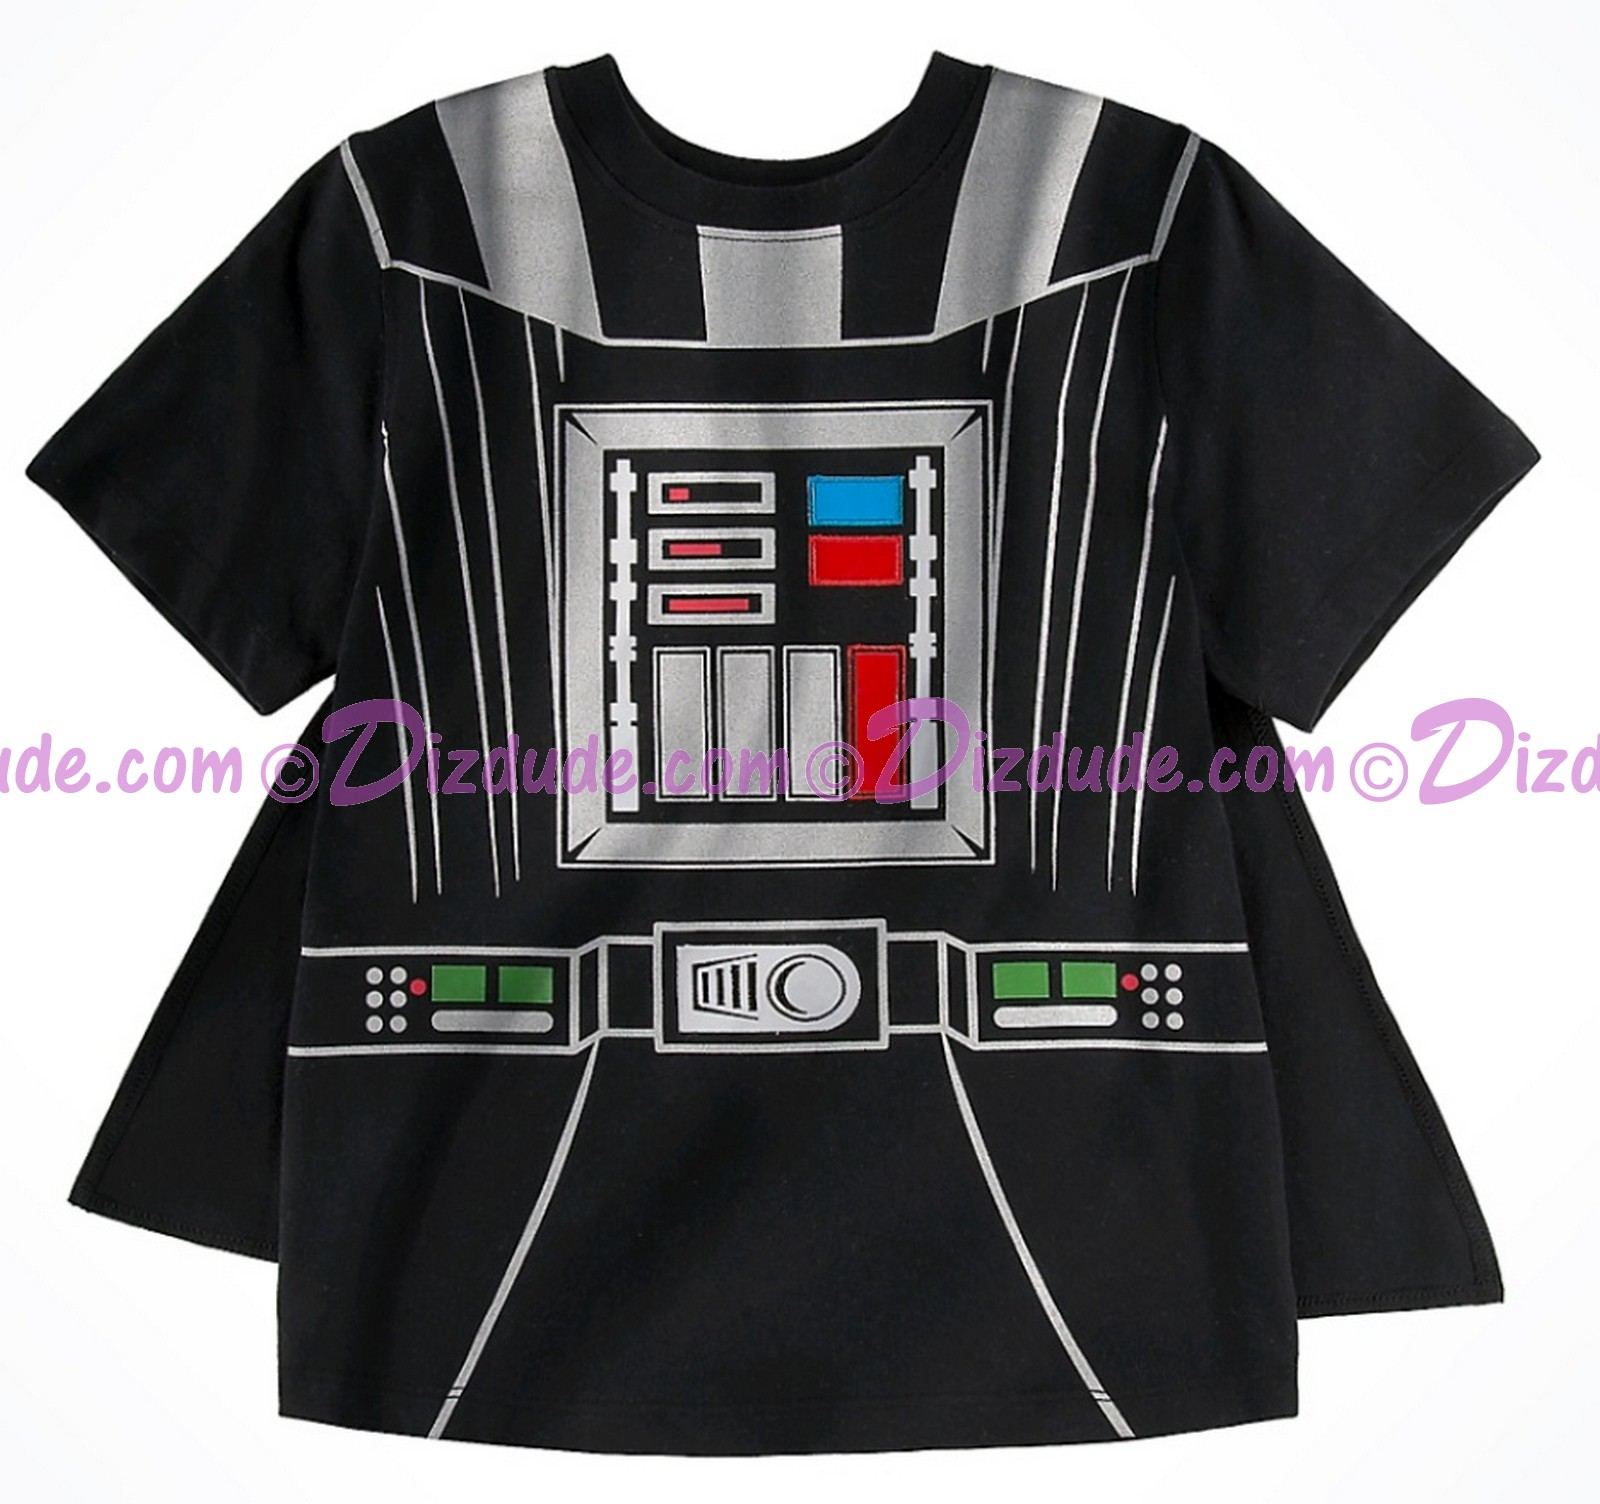 Darth Vader with Cape Costume Youth T-Shirt (Tshirt, T shirt or Tee) ~ Disney SOLO A Star Wars Story © Dizdude.com